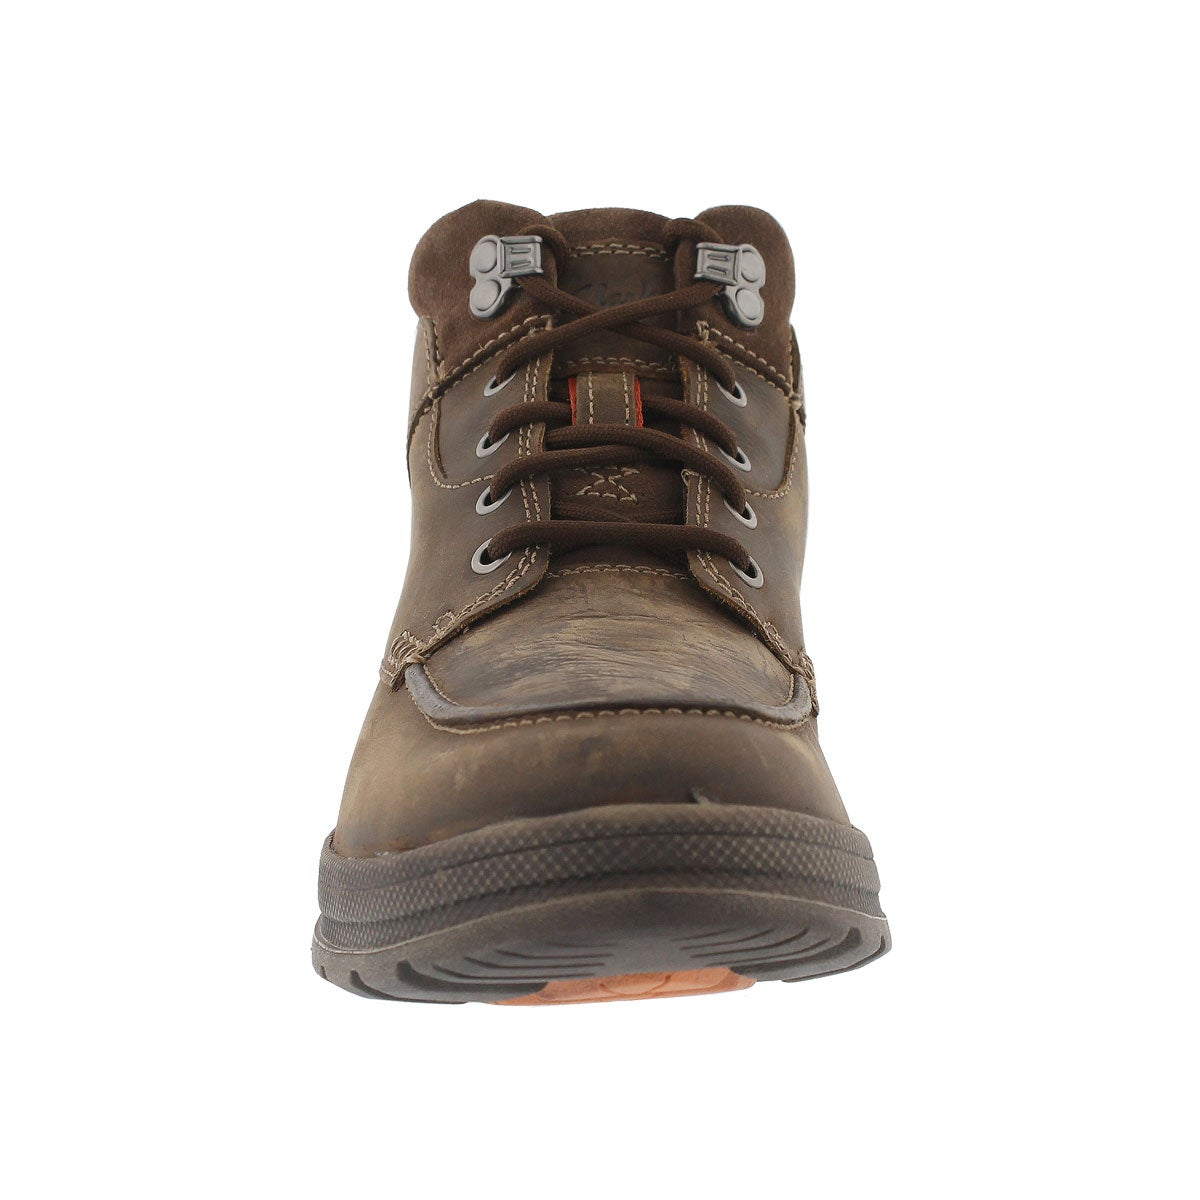 Mns Ryerson Dale brown hiking boot